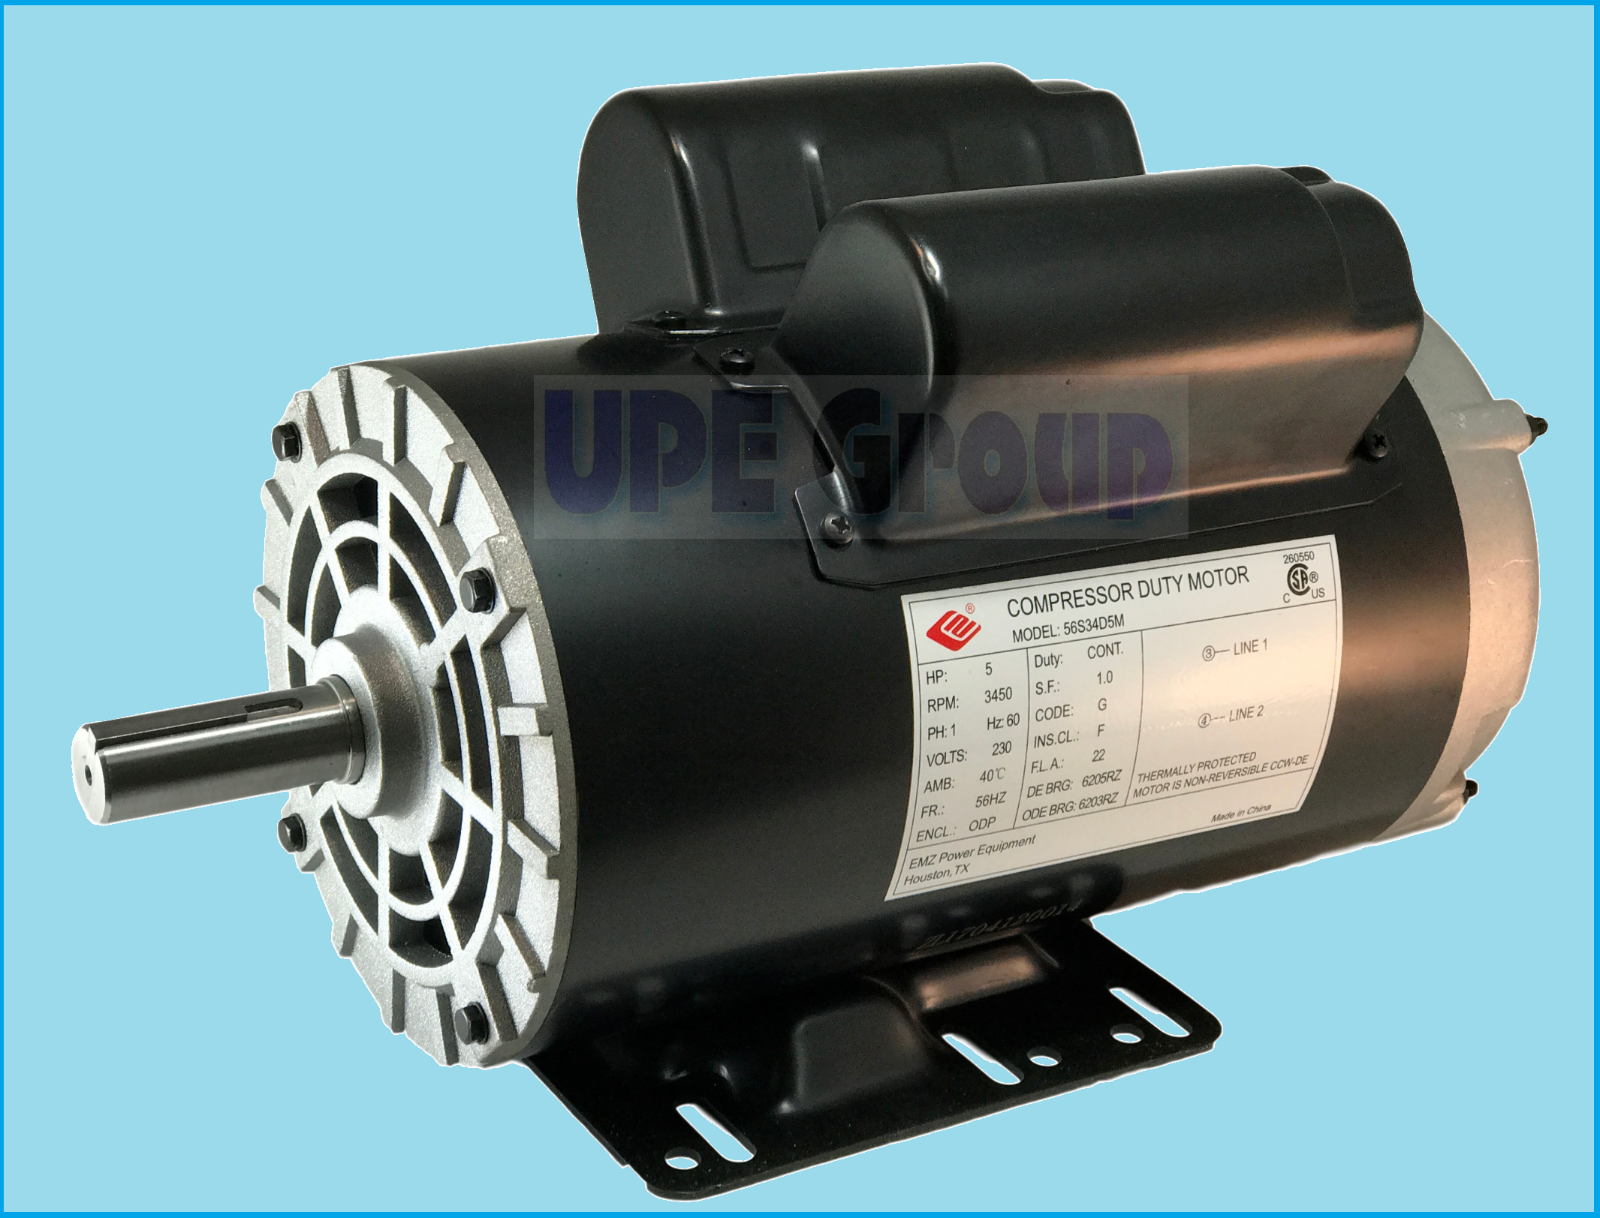 5 Hp Compressor Duty Electric Motor 1 Phase 3450 Rpm 56 Frame 7 8 Wire Diagram For Ph Norton Secured Powered By Verisign